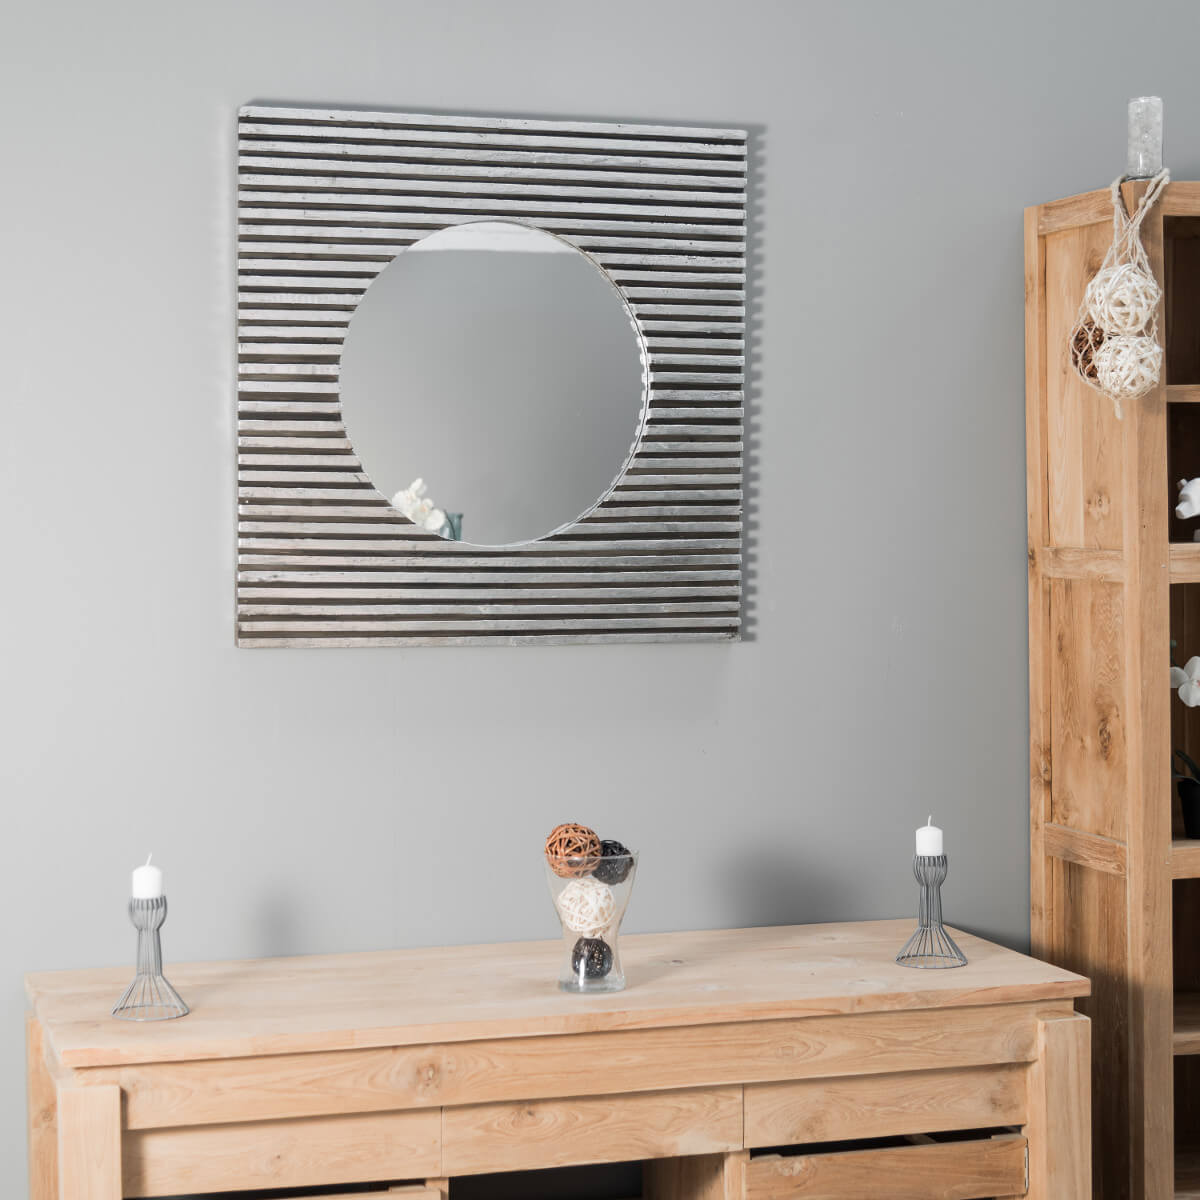 miroir de d coration en bois massif art d co carr argent l 80 cm. Black Bedroom Furniture Sets. Home Design Ideas